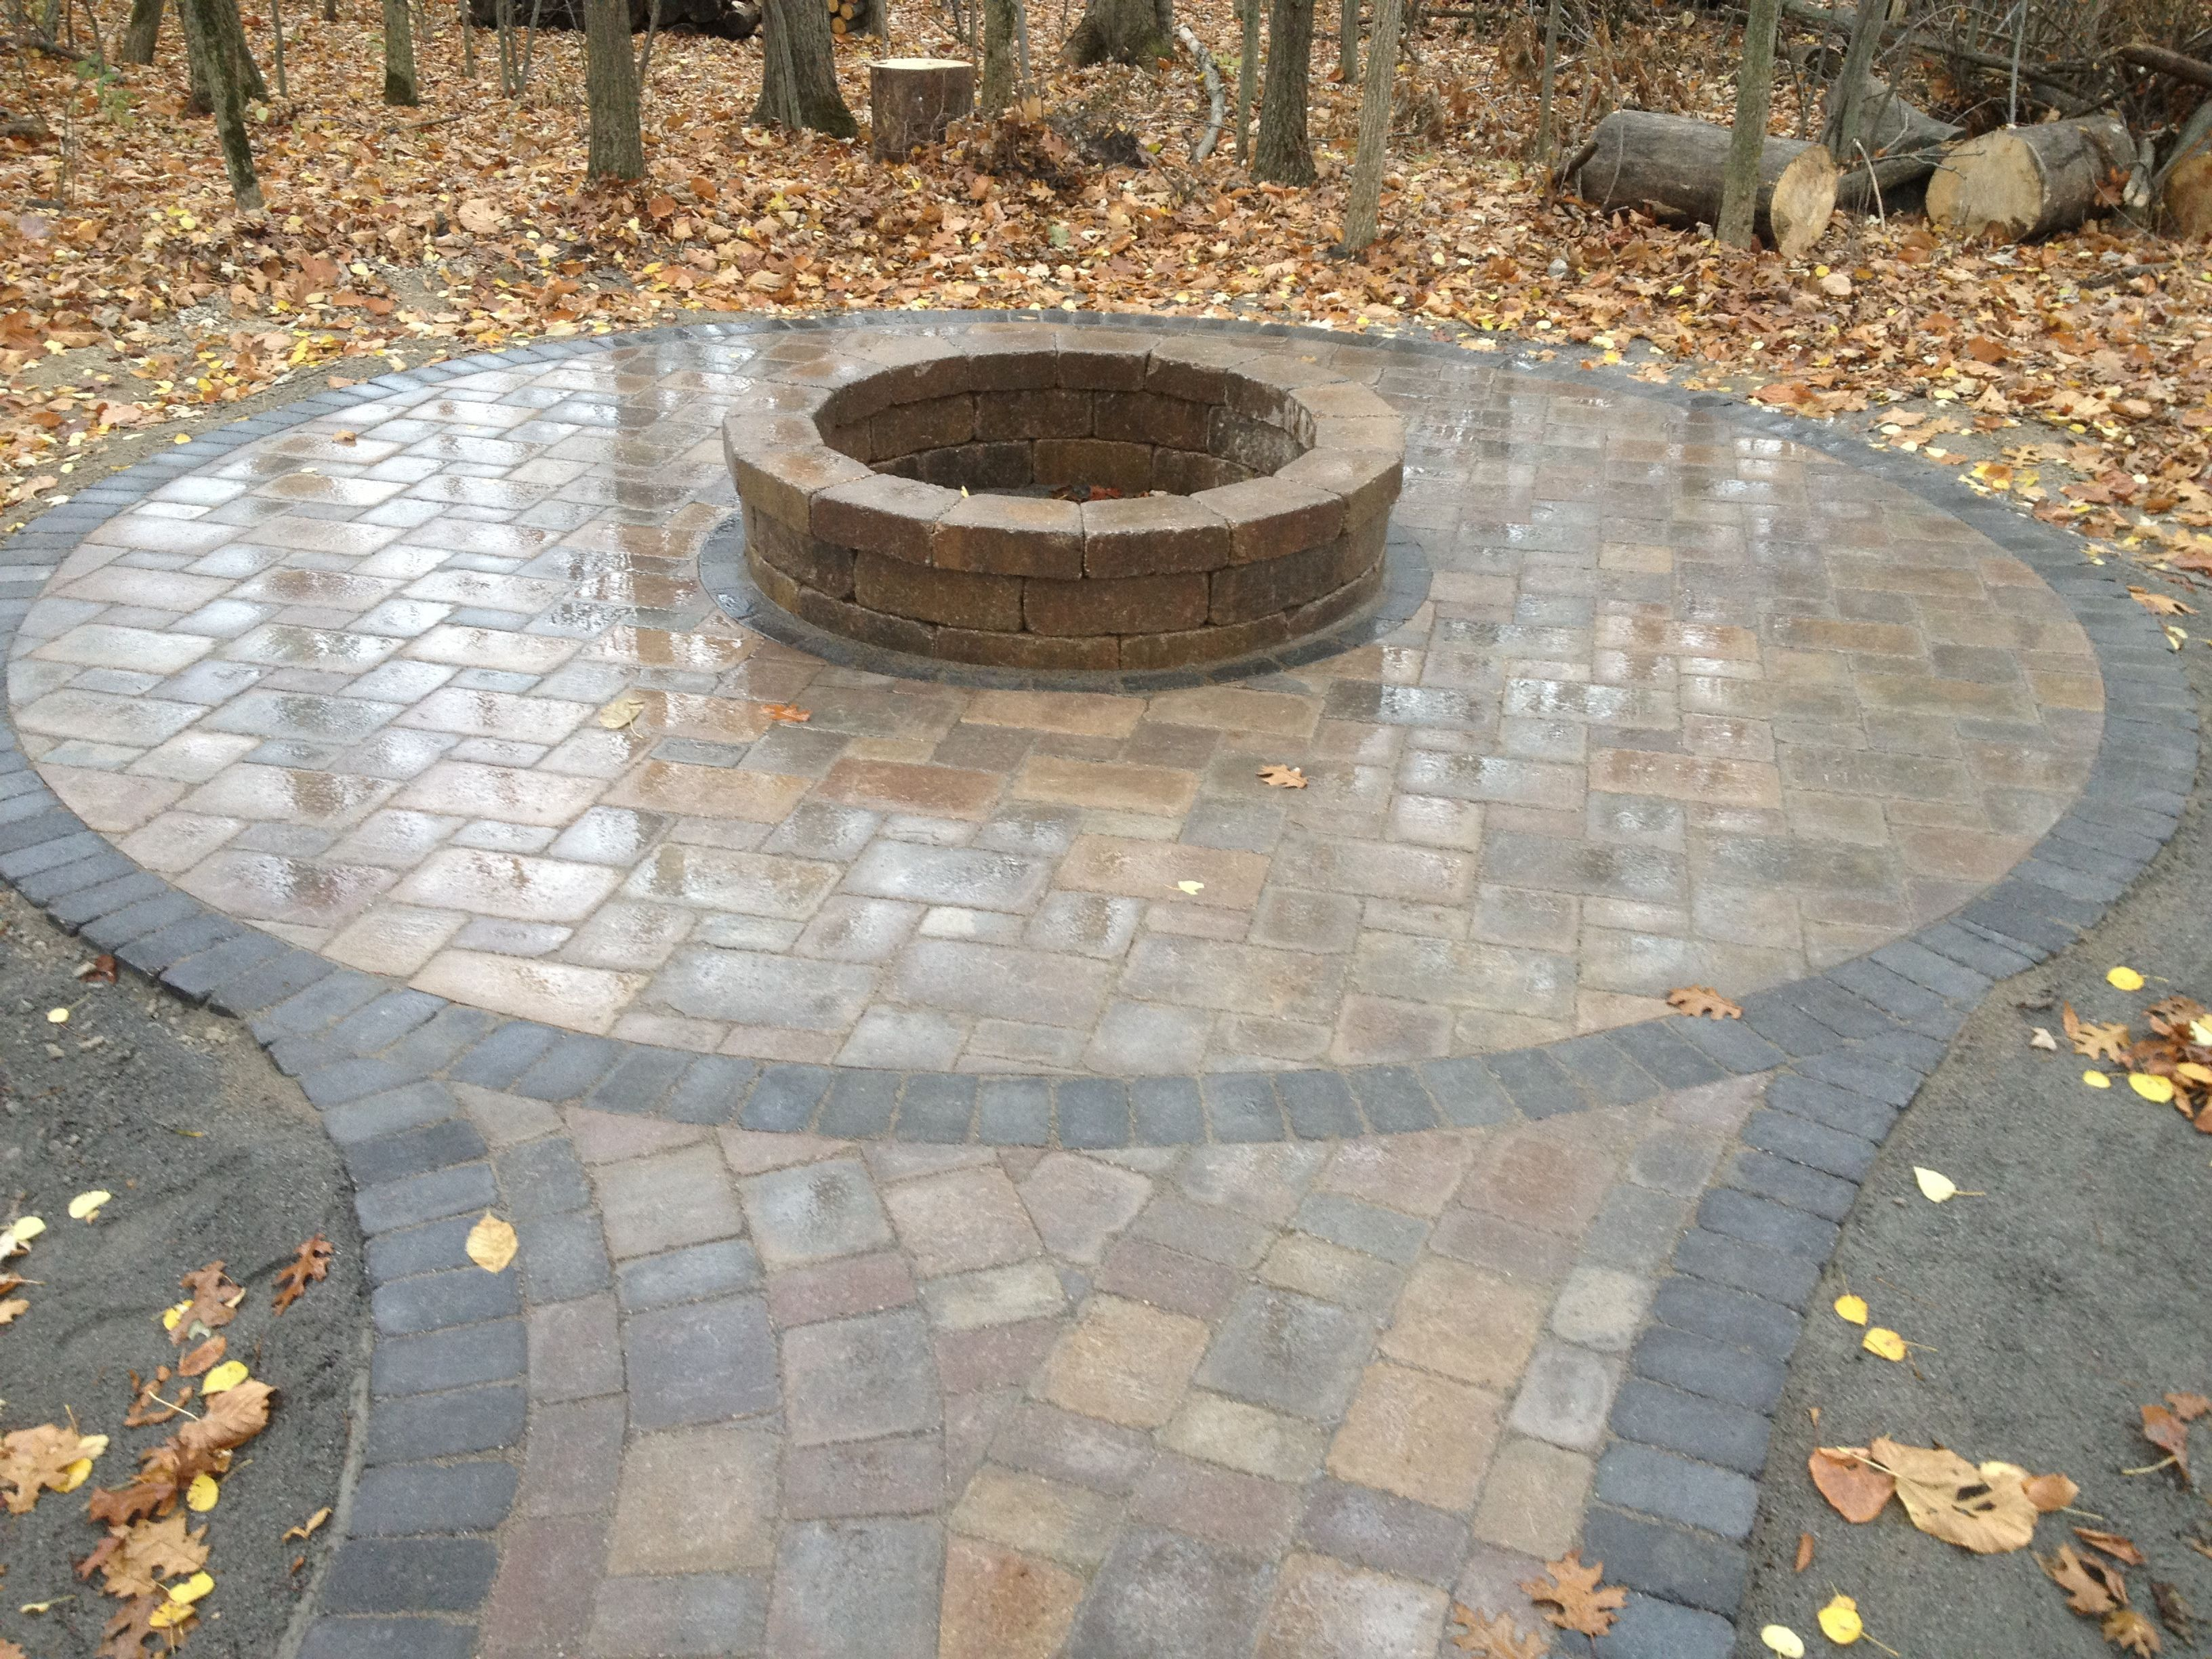 Marvelous Brick Paver Patio And Tumbled Paver Stone Fire